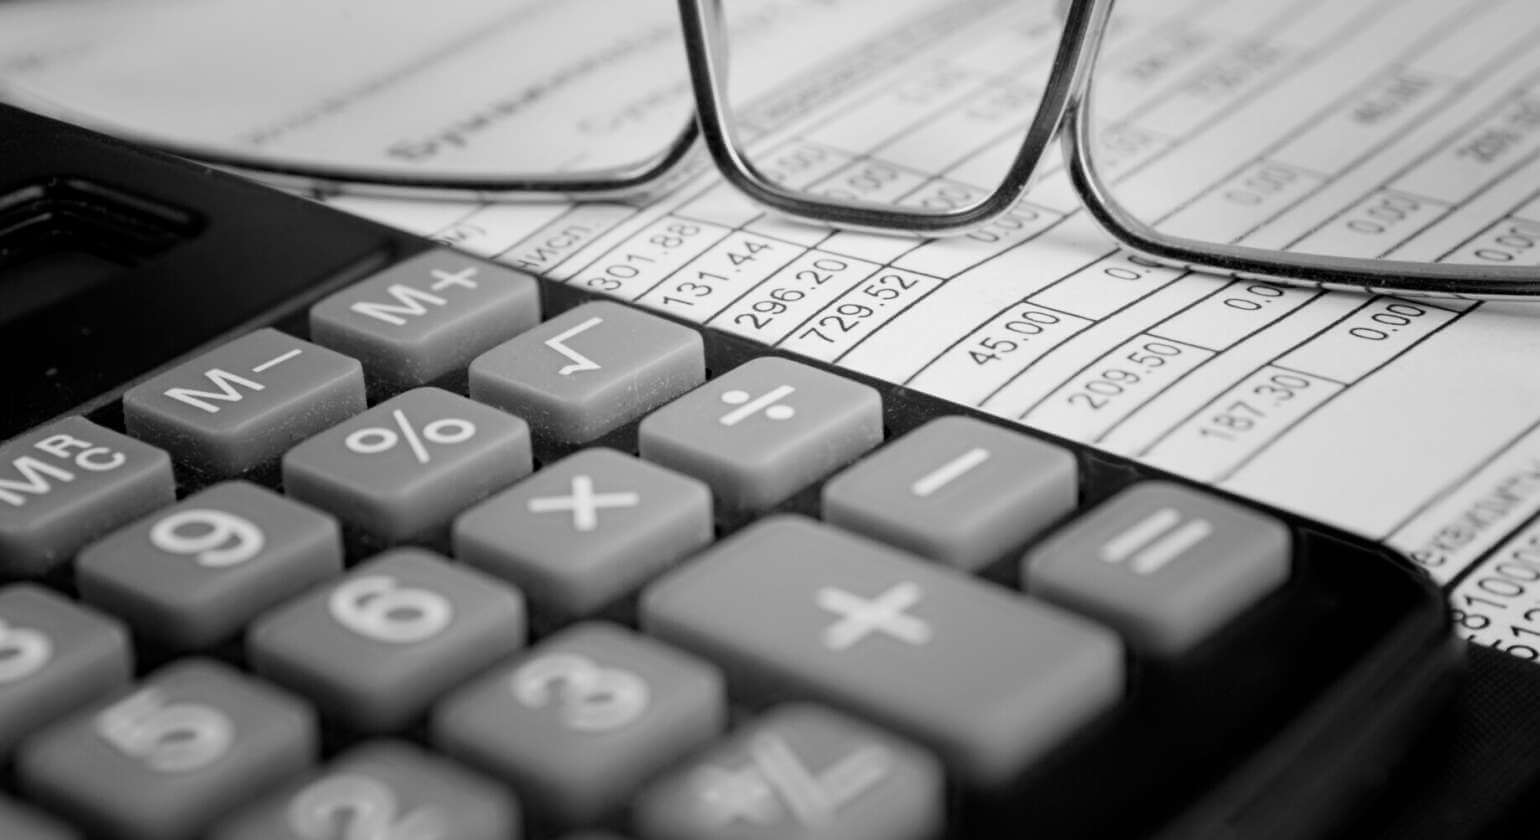 The Key Considerations When Choosing The Best OCR Bills Scanning Software